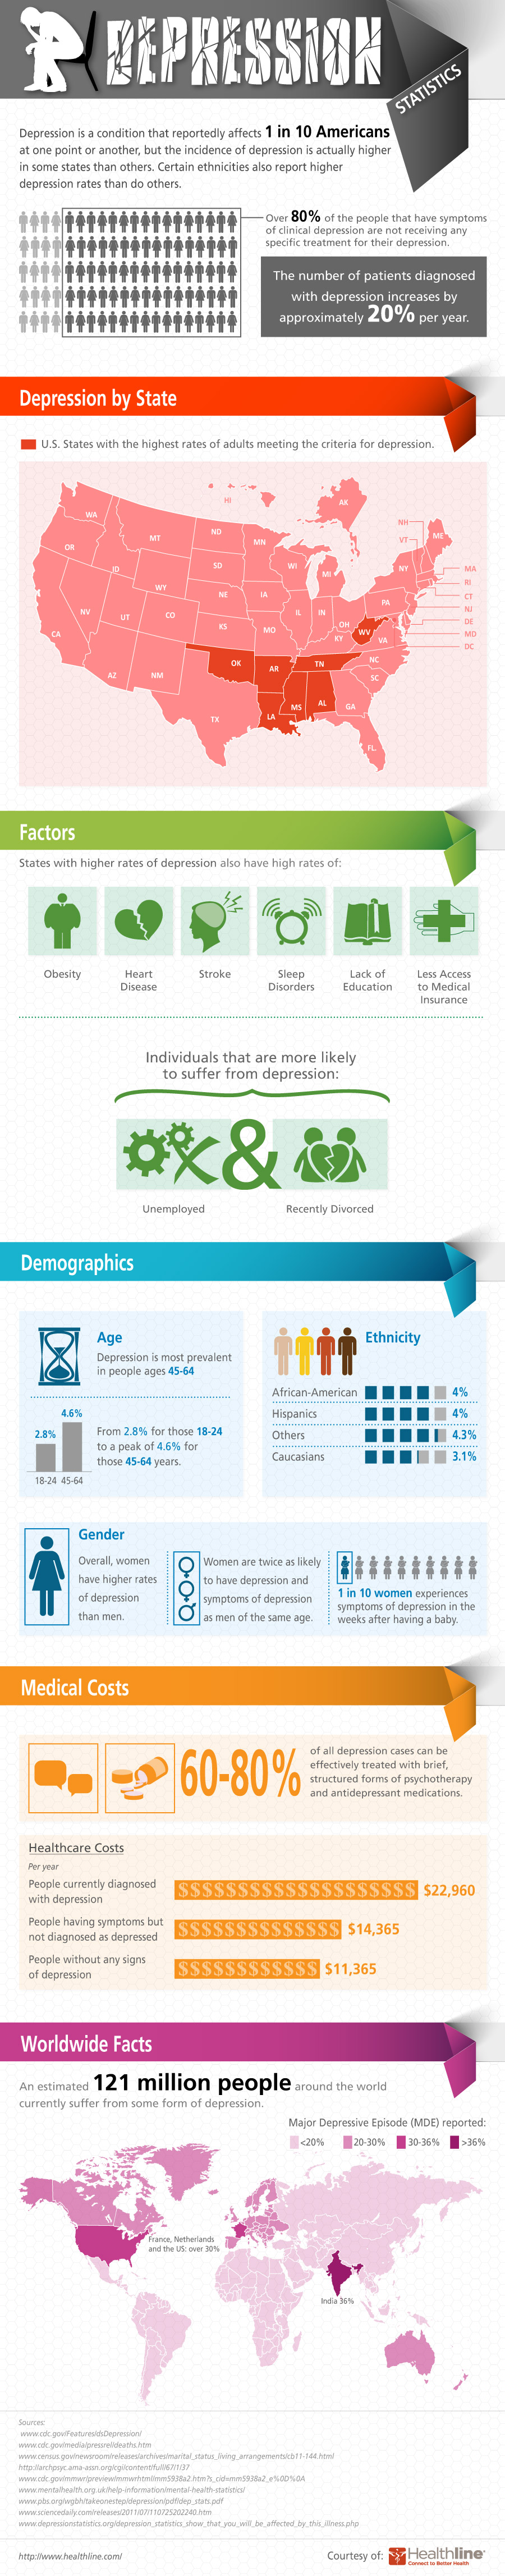 unhappiness-by-the-numbers-2012-depression-statistics_50e612614574f